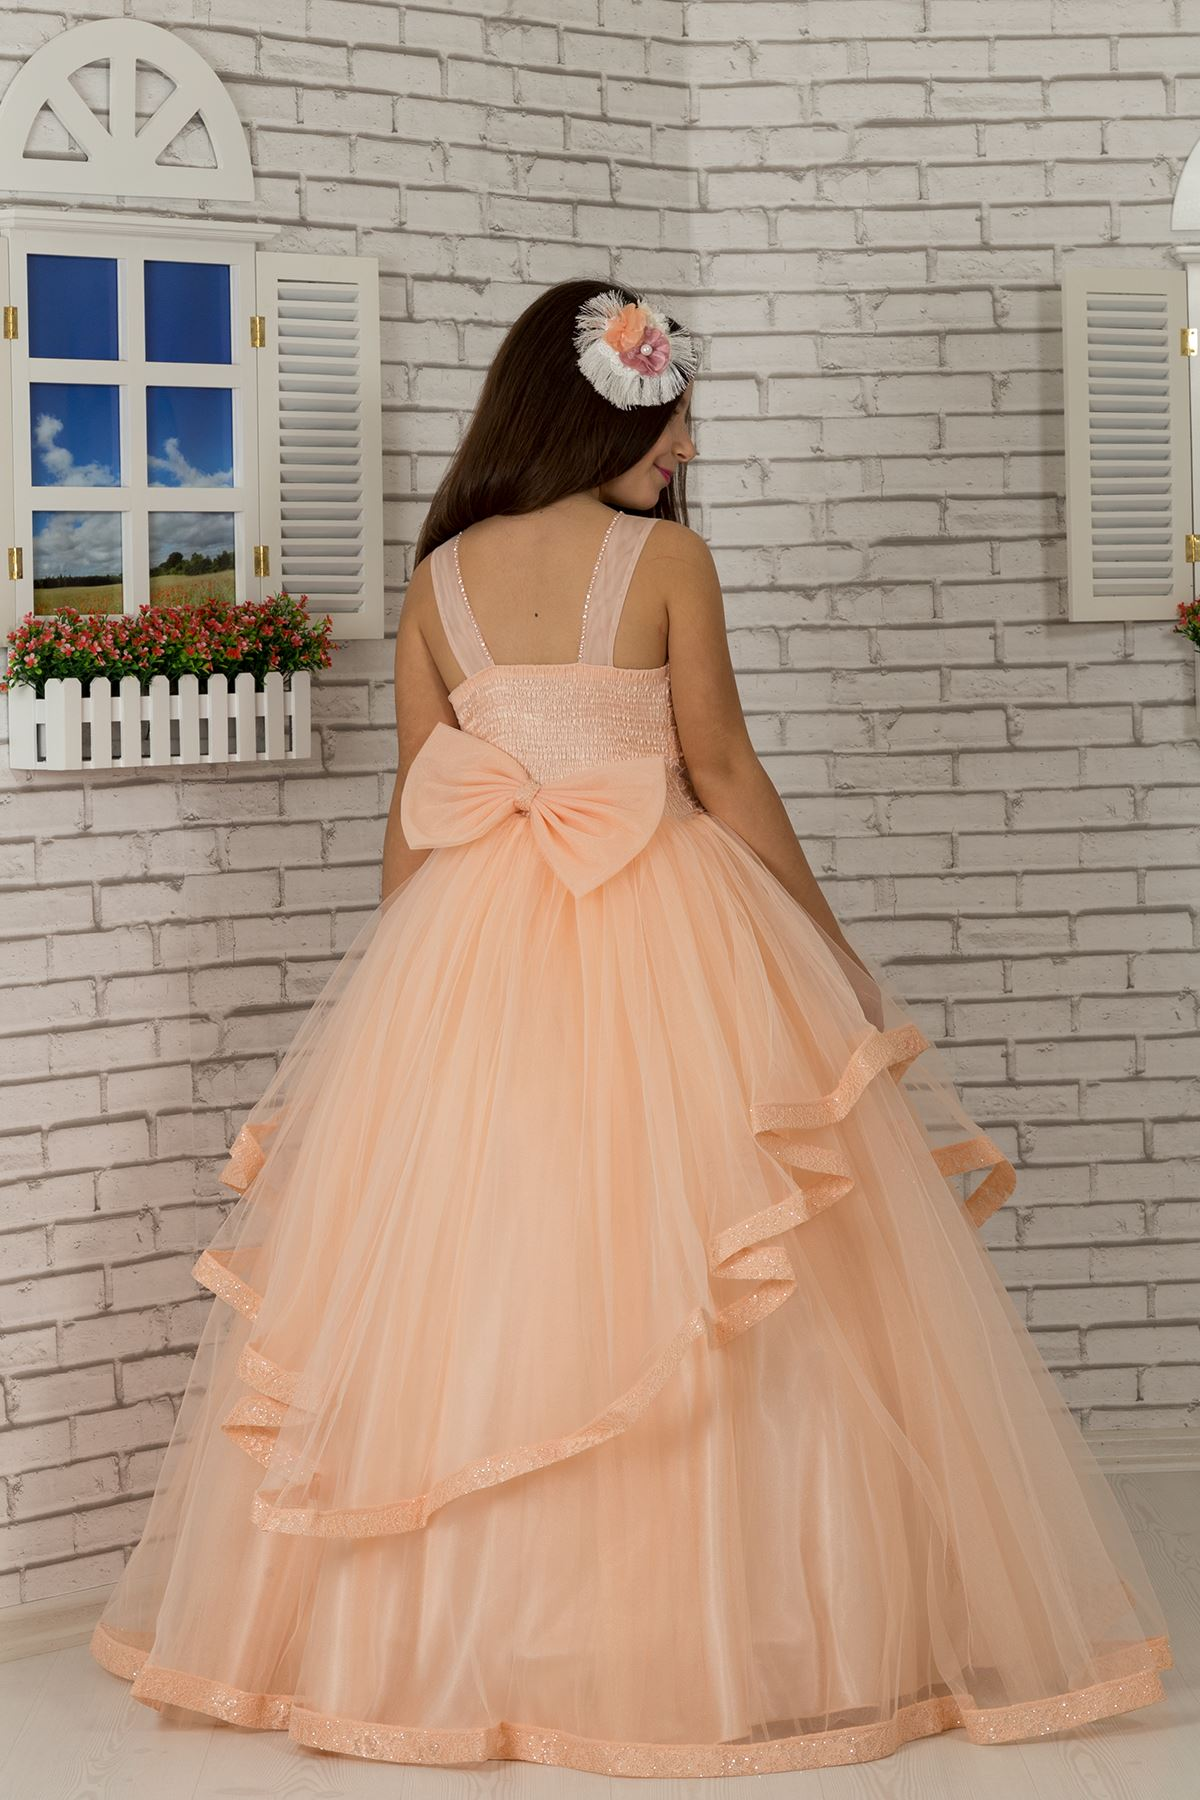 Liggaam gedetailleerde, Tulle Fluffy Girl's Aand Dress 602 Salmon